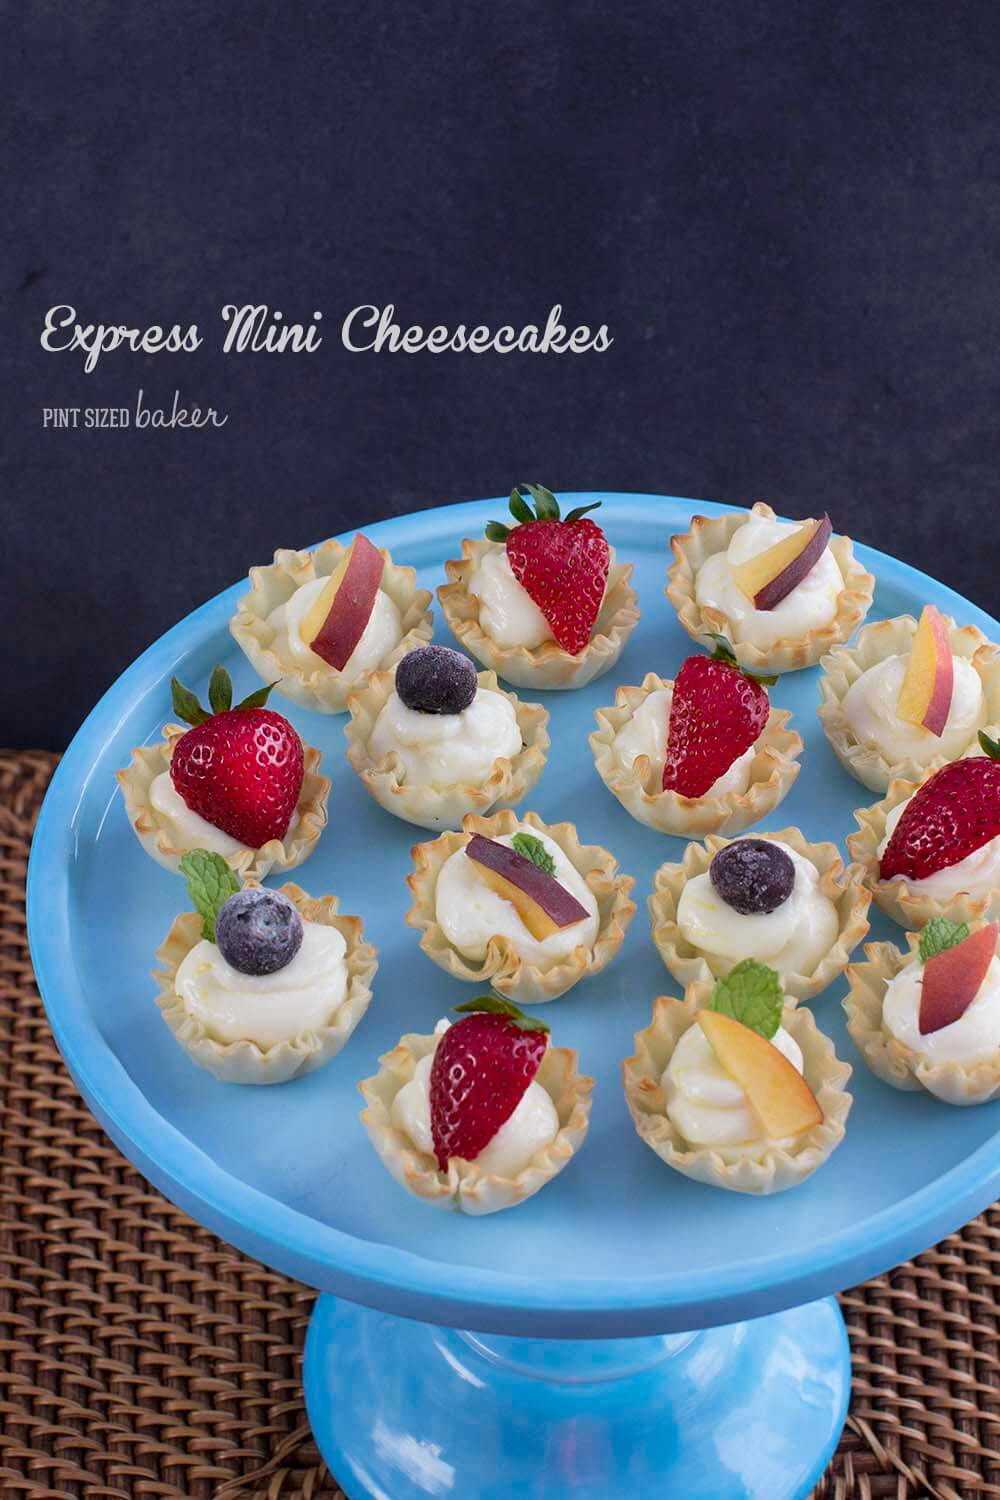 Whip up these Express Mini Lemon Cheesecakes in no time and be ready for your dinner party. They are stunning to serve and everyone gets to try one!